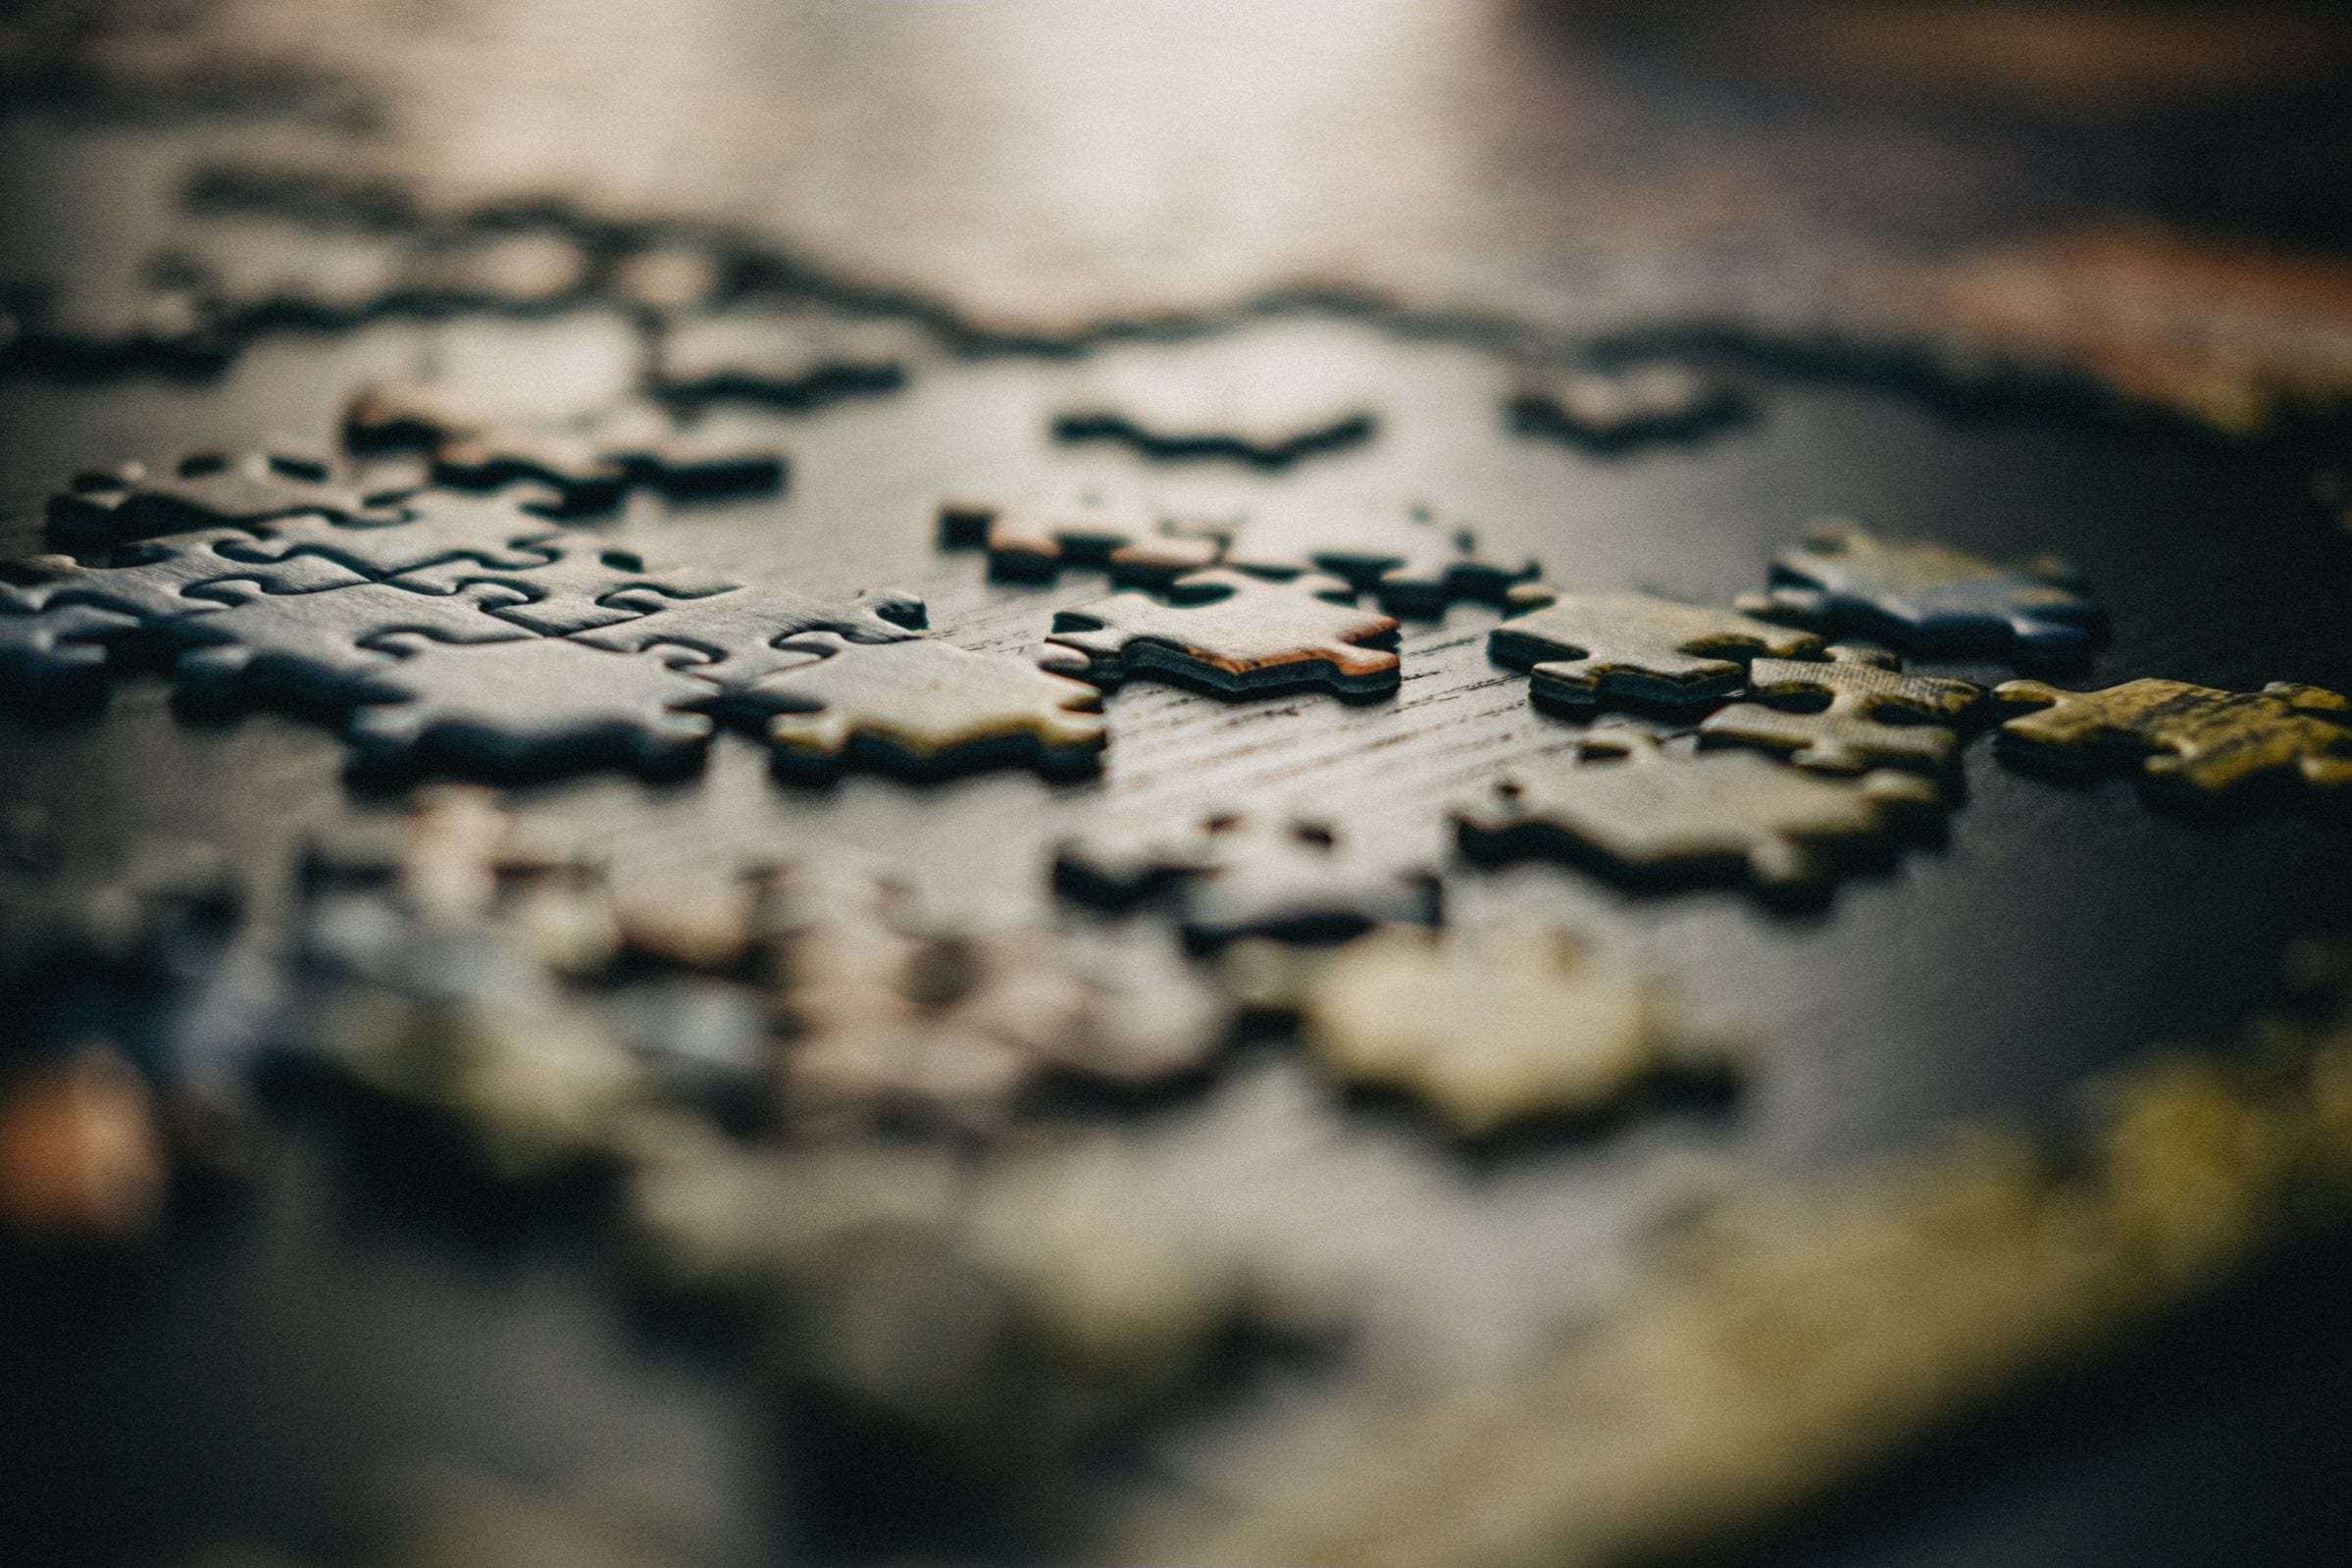 An uncompleted jigsaw puzzle on a table